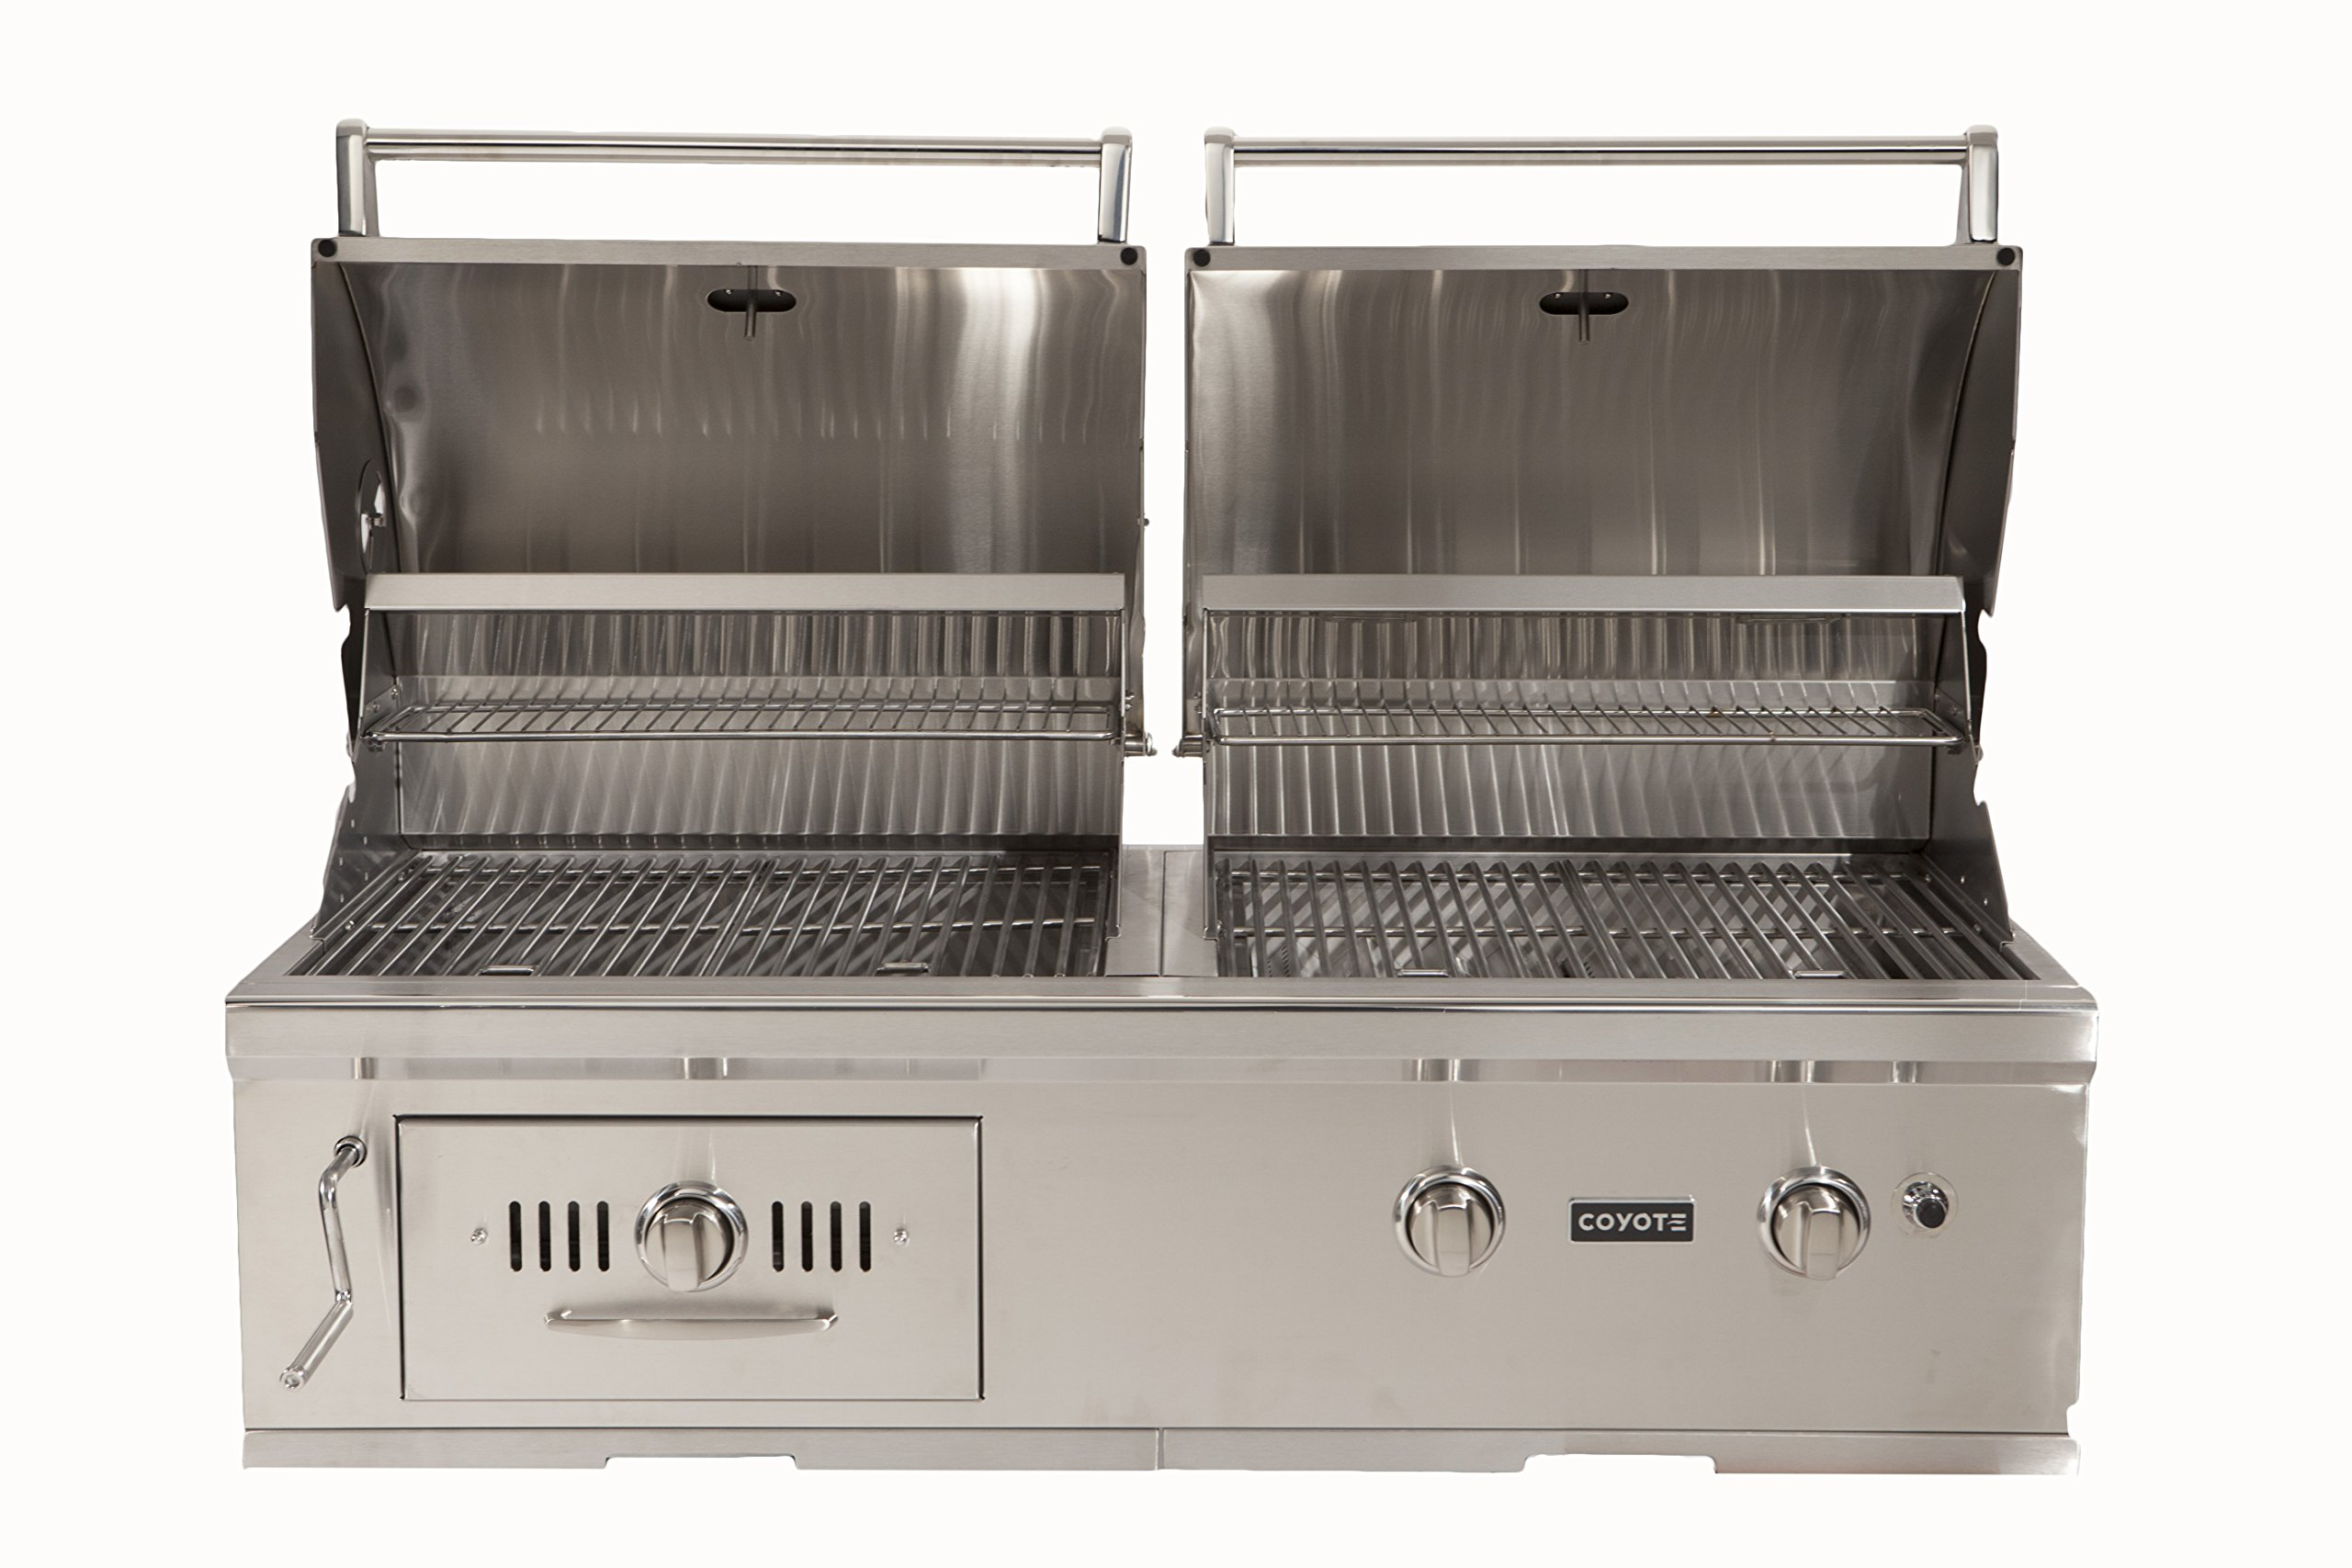 Coyote CH50NG Hybrid Grill, 50-Inch